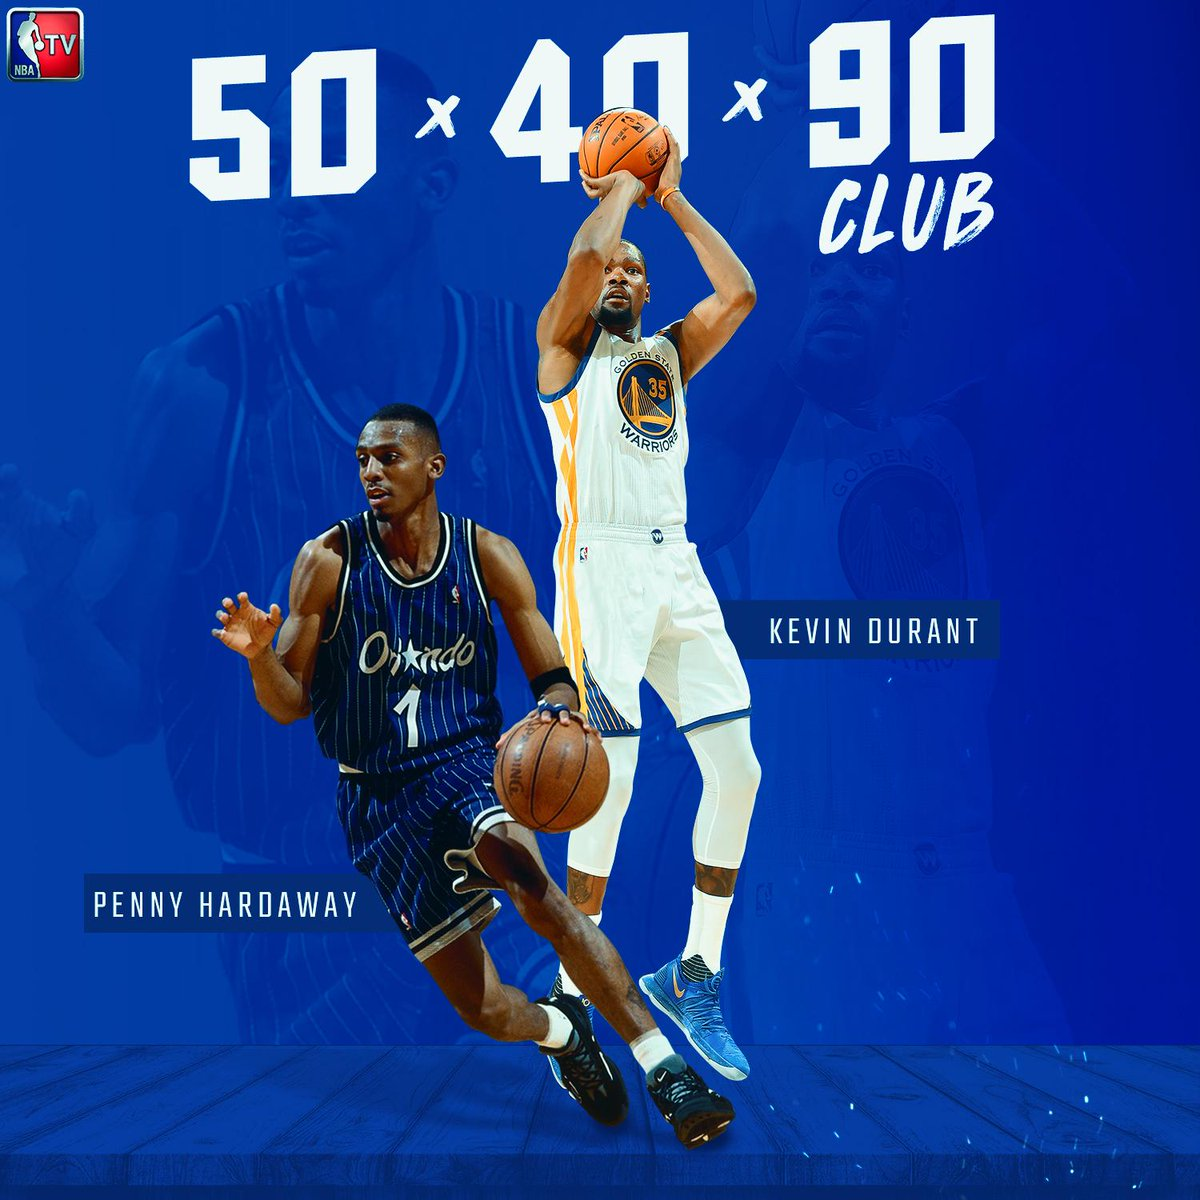 KD joined Penny Hardaway as the only players to shoot 50/40/90 for an entire #NBAFinals series (min. 50 FGA/20 3PA/ 20 FTA).